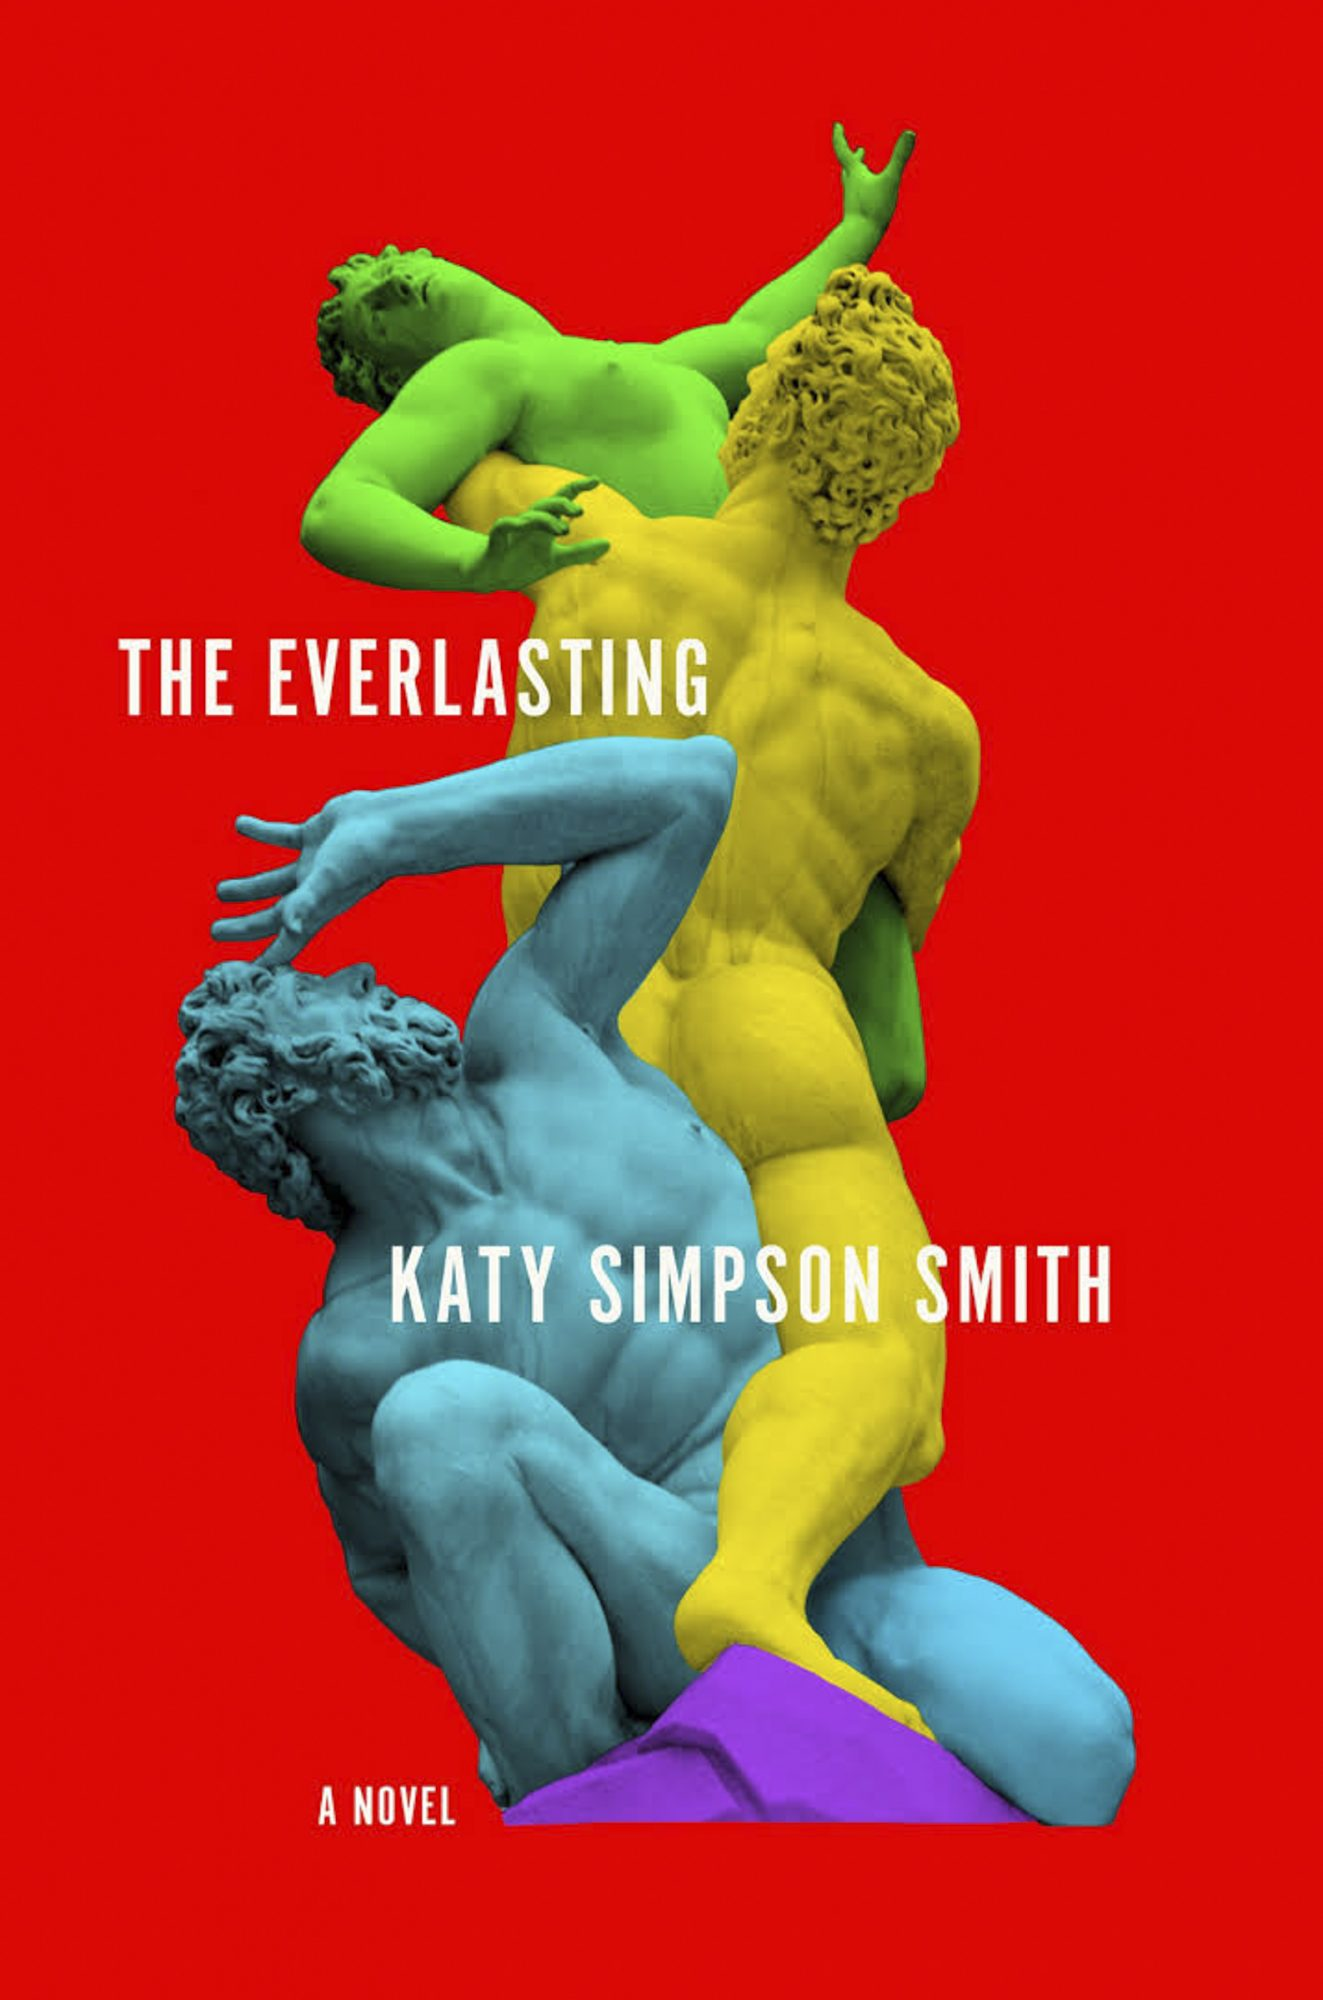 The Everlasting by Katy Simpson Smith CR: HarperCollins